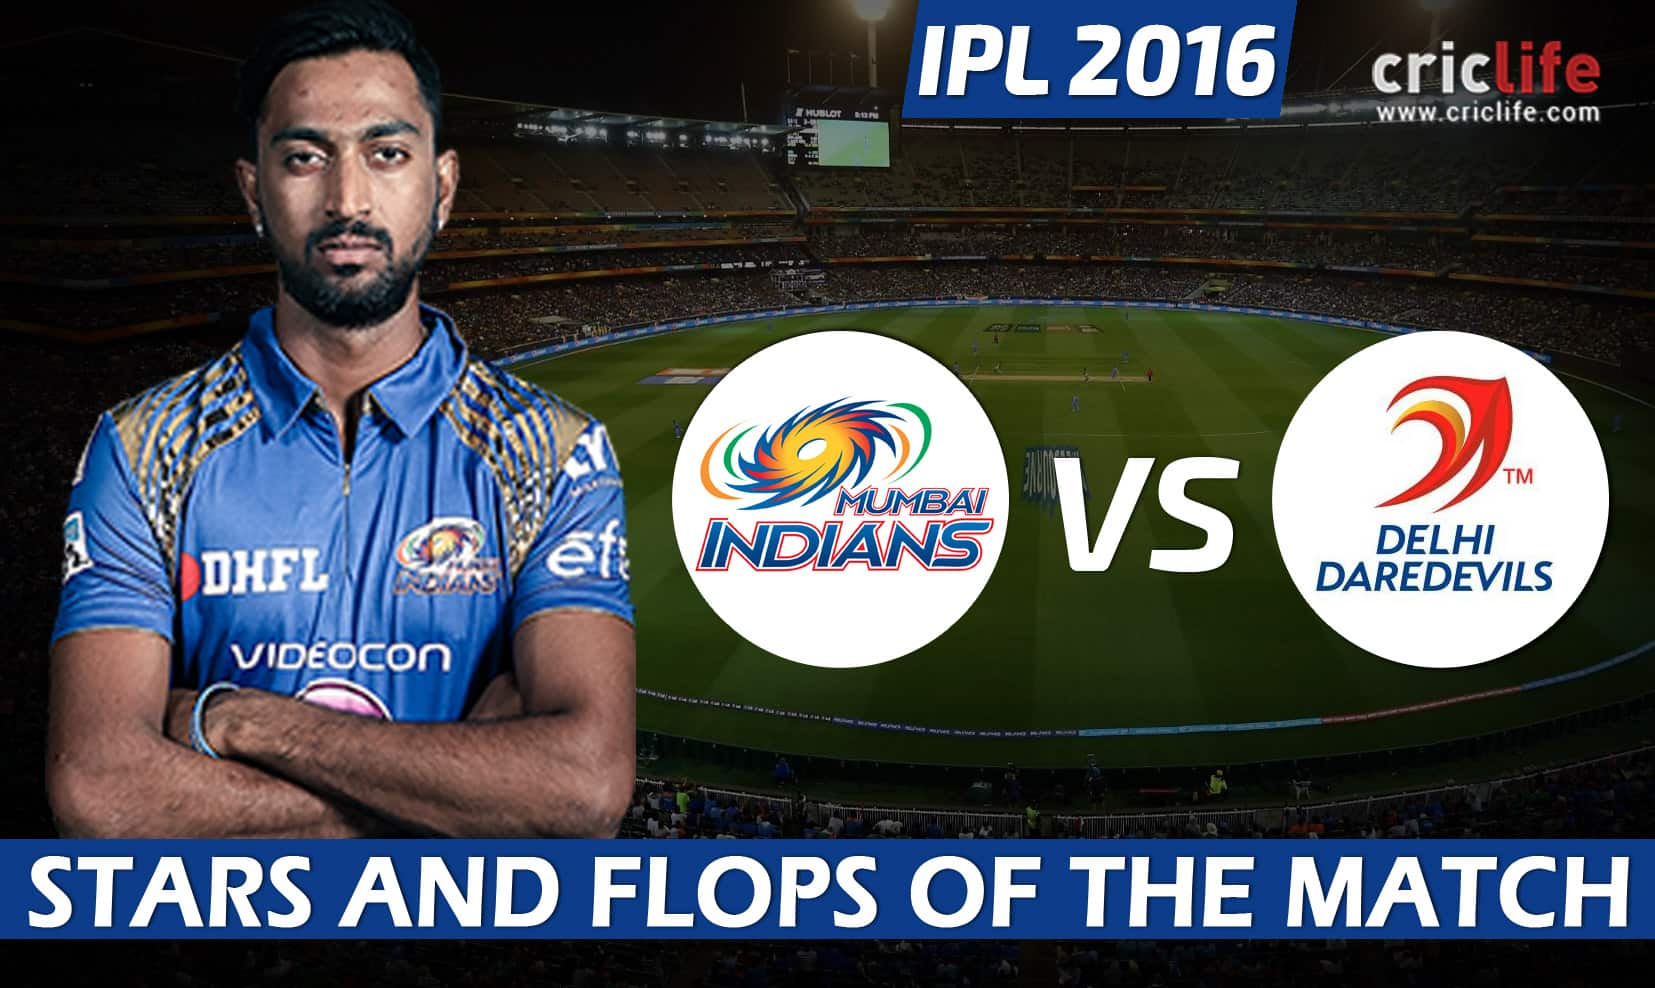 IPL 2016: Mumbai Indians beat Delhi Daredevils by 80 runs at Visakhapatnam, Stars and  Flops